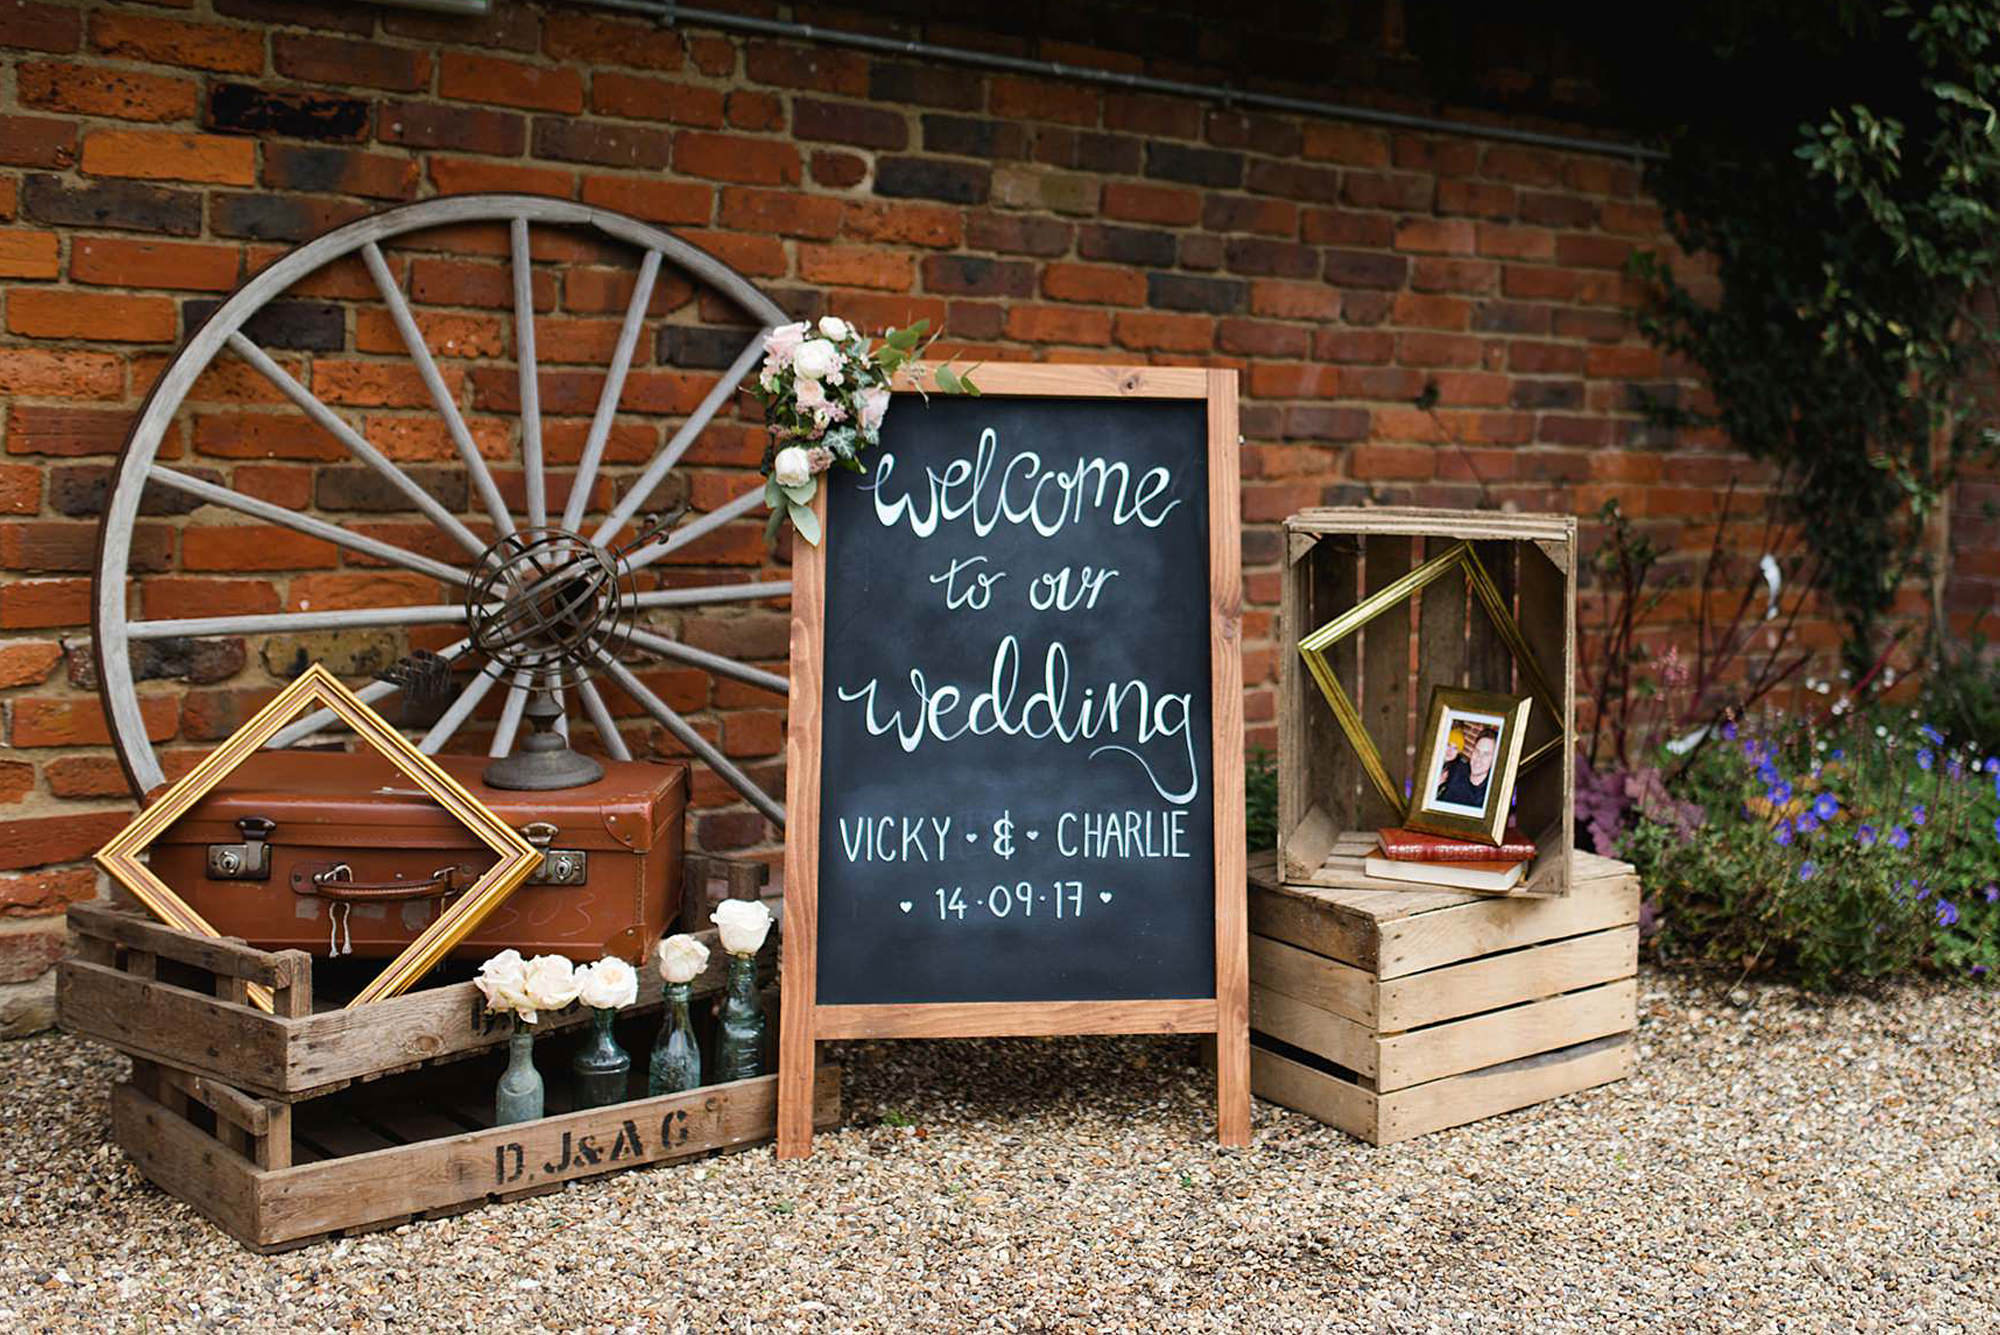 Lillibrooke Manor wedding welcome signs